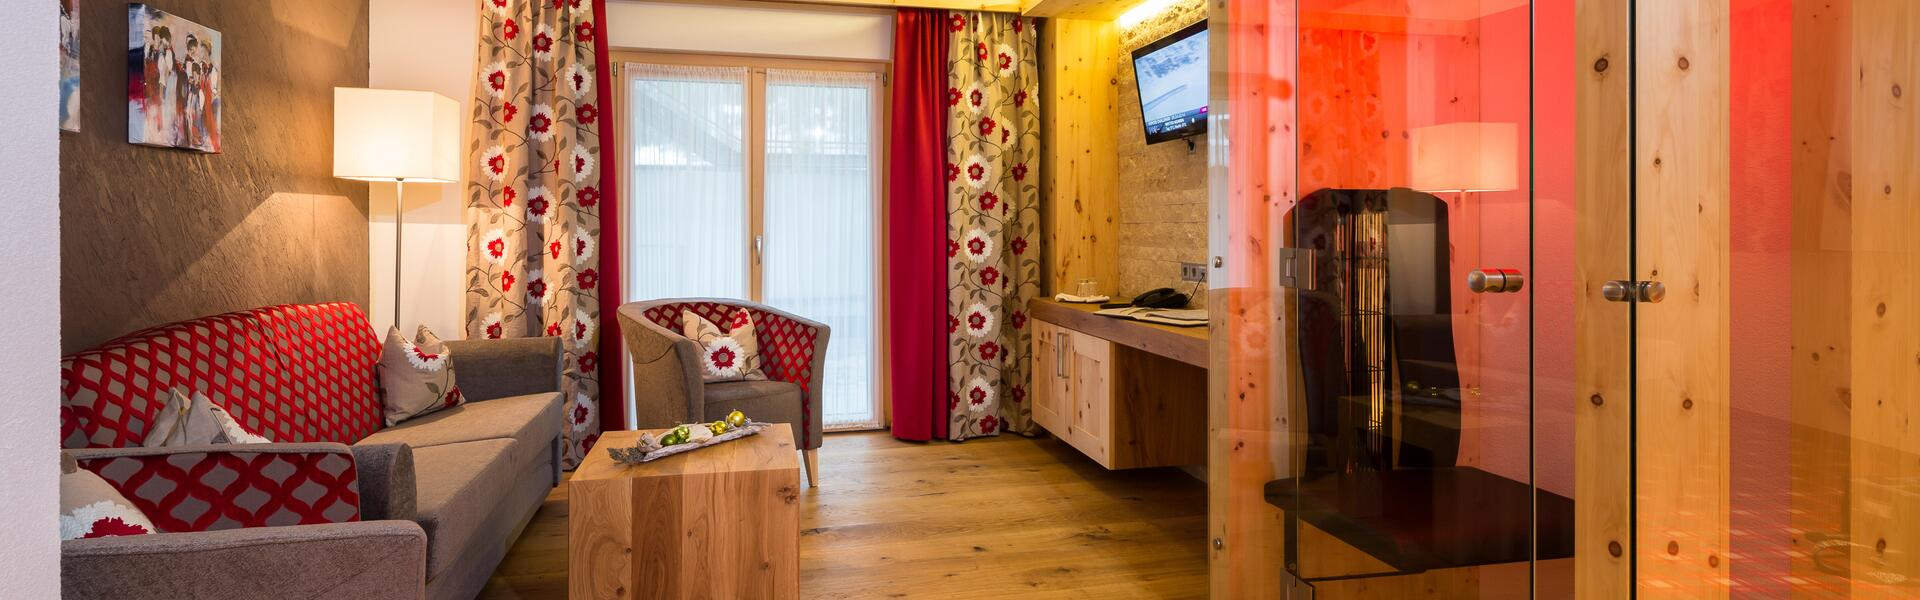 double room alpenrose